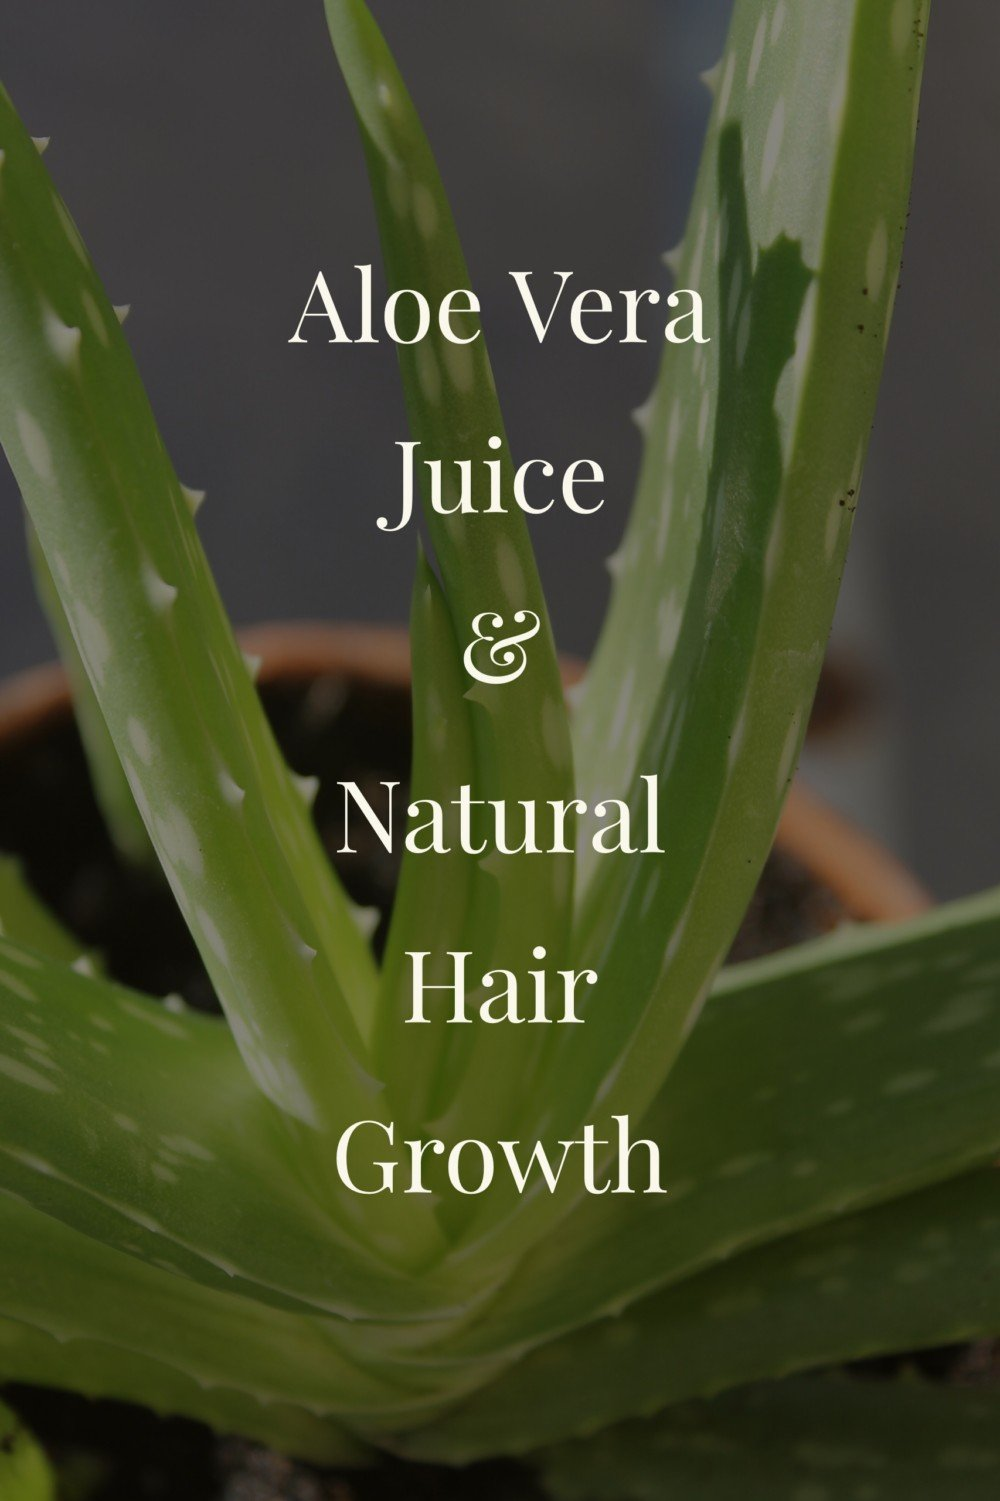 aloe vera juice and natural hair growth - curly chic